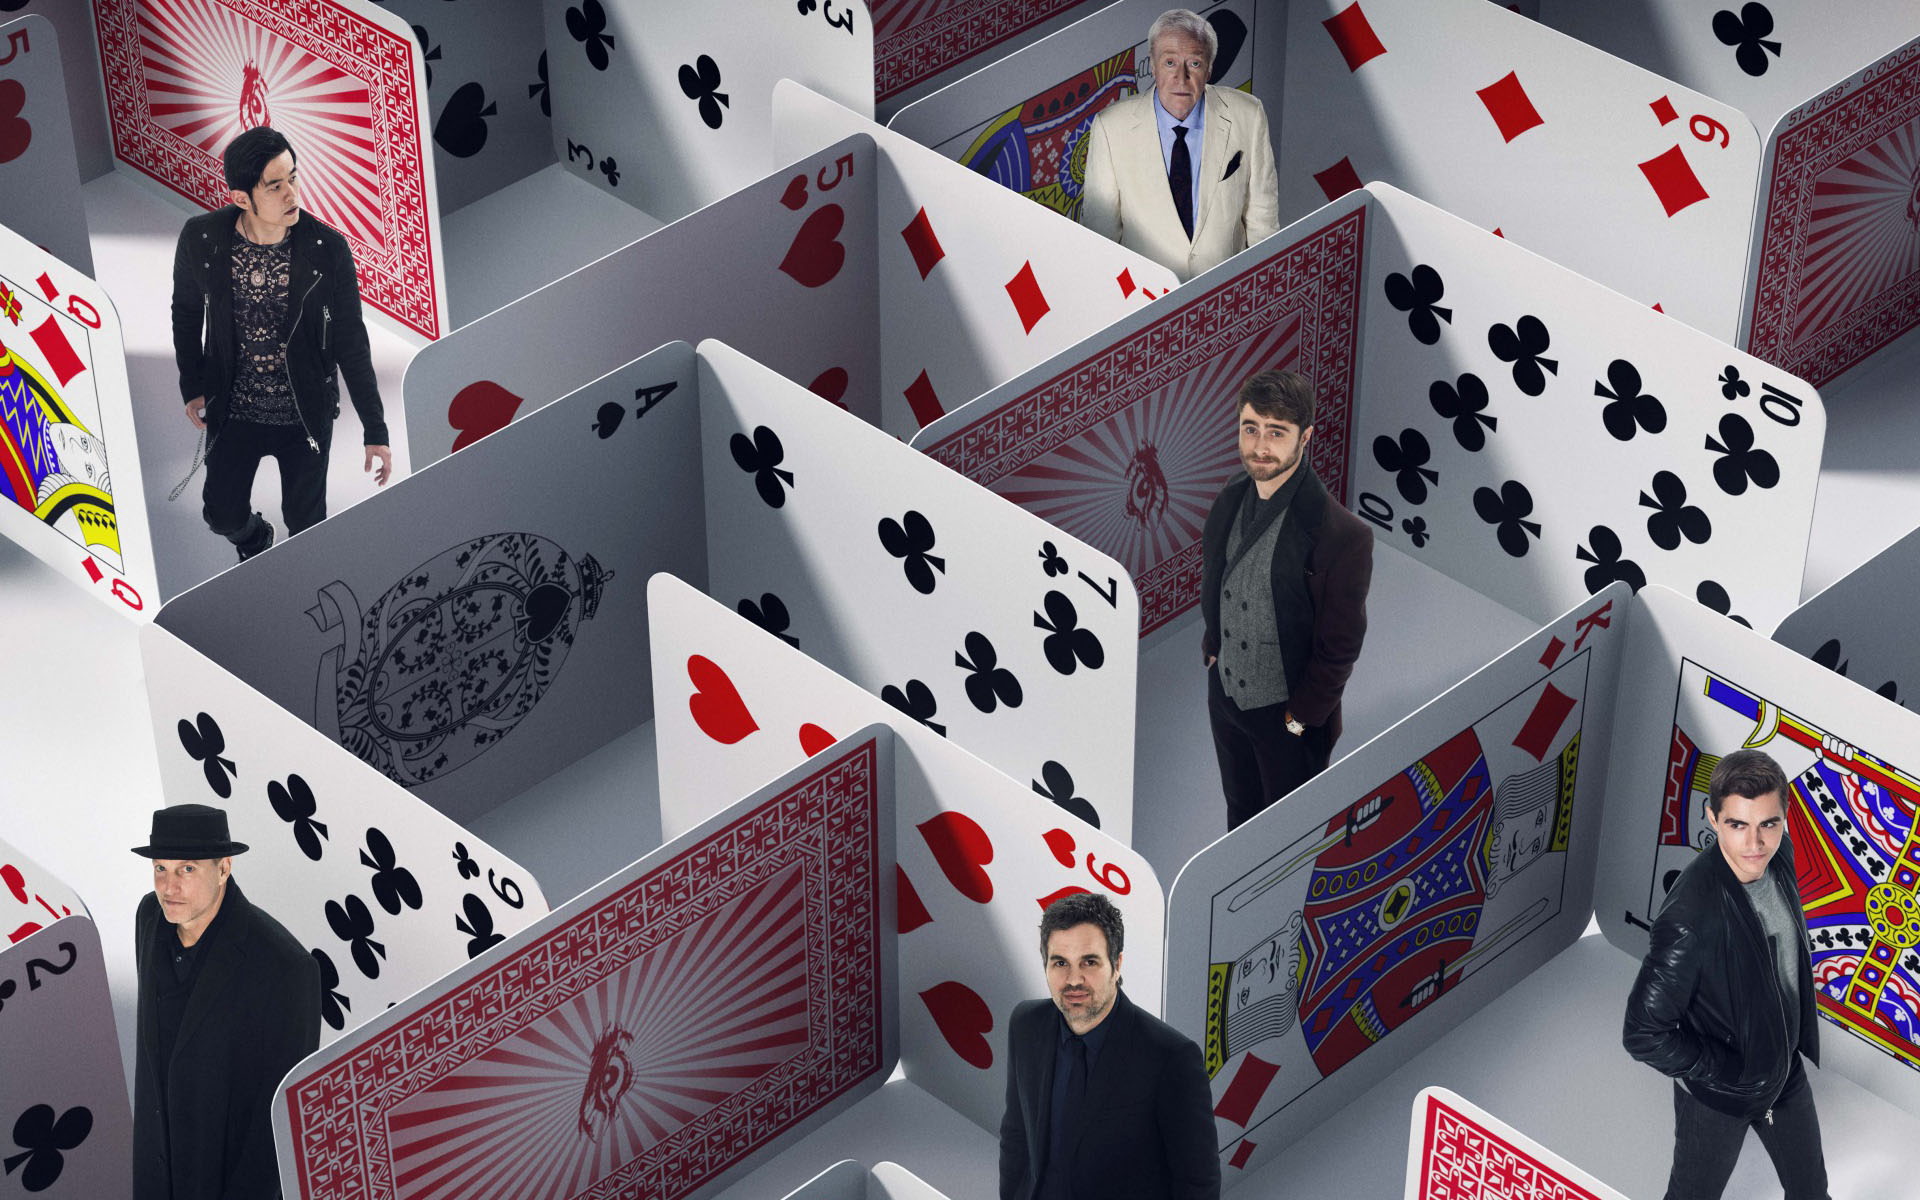 now you see me 2 full movie free hd download